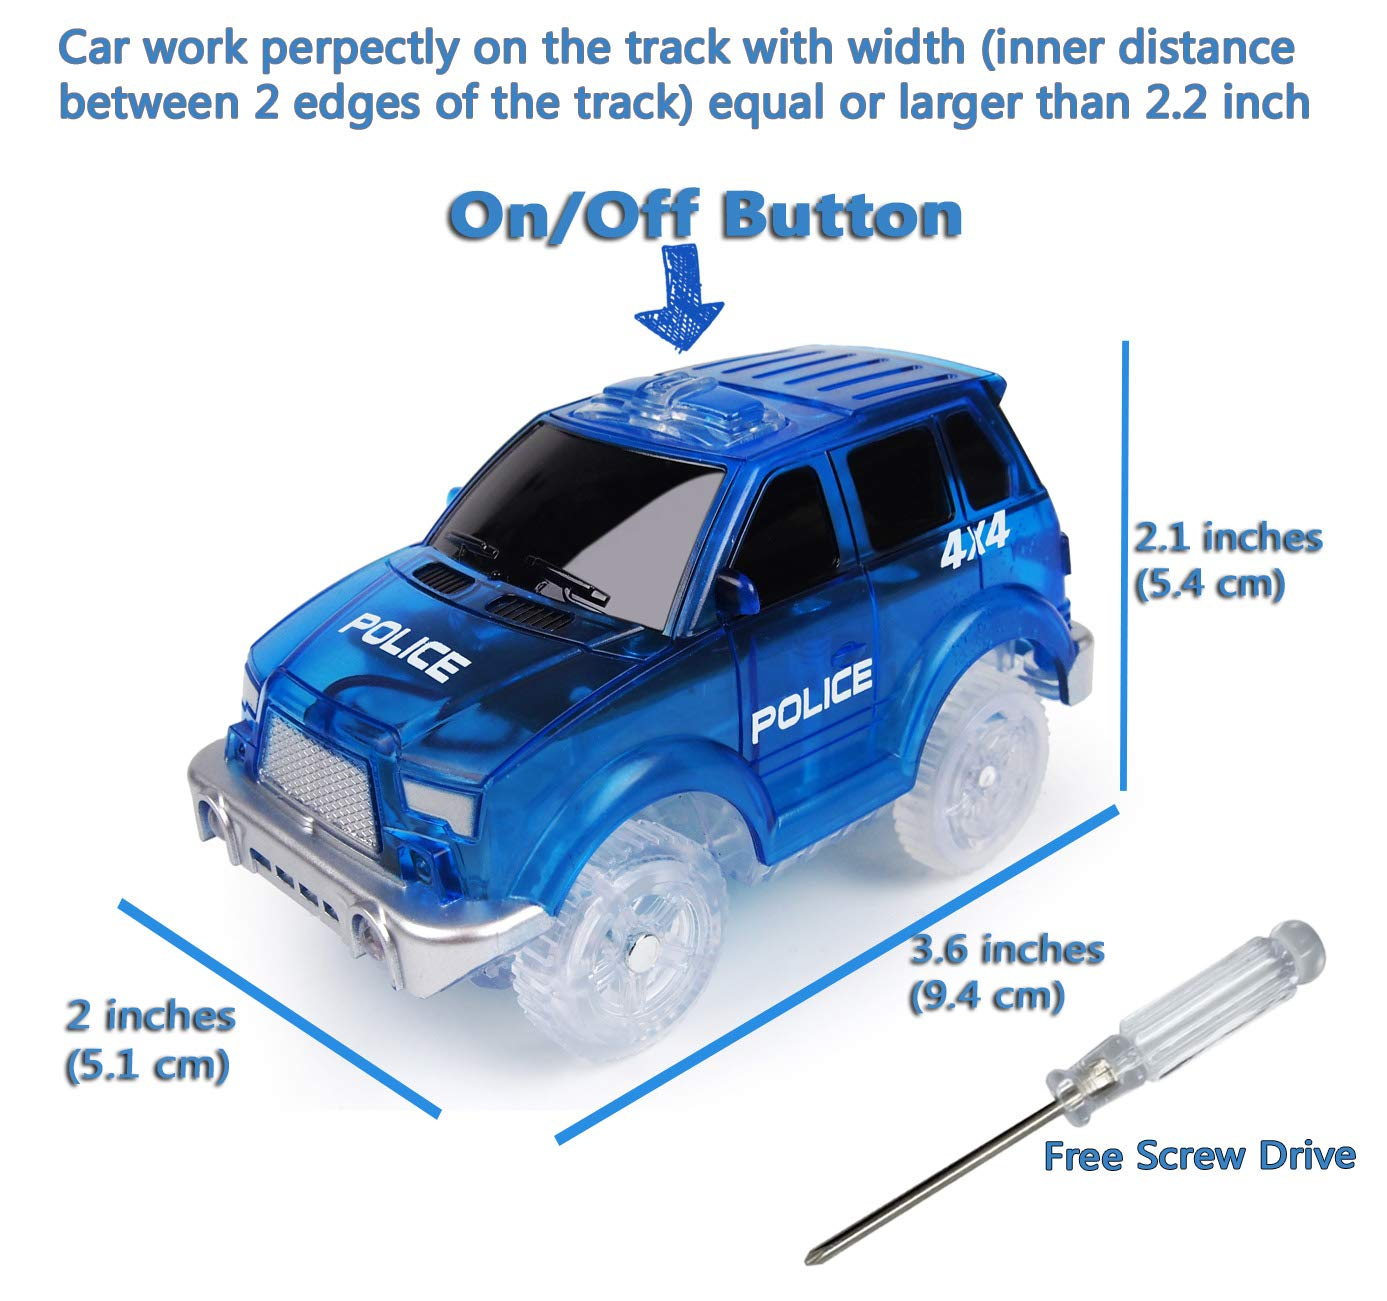 Track Car 3 Pack, Green Military Jeep, Blue Police and School Bus Car, with 5 LED Lights, Compatible with Most Tracks Including Magic Tracks, Neo Twister Tracks, Boys and Girls by HapiSimi (Image #3)